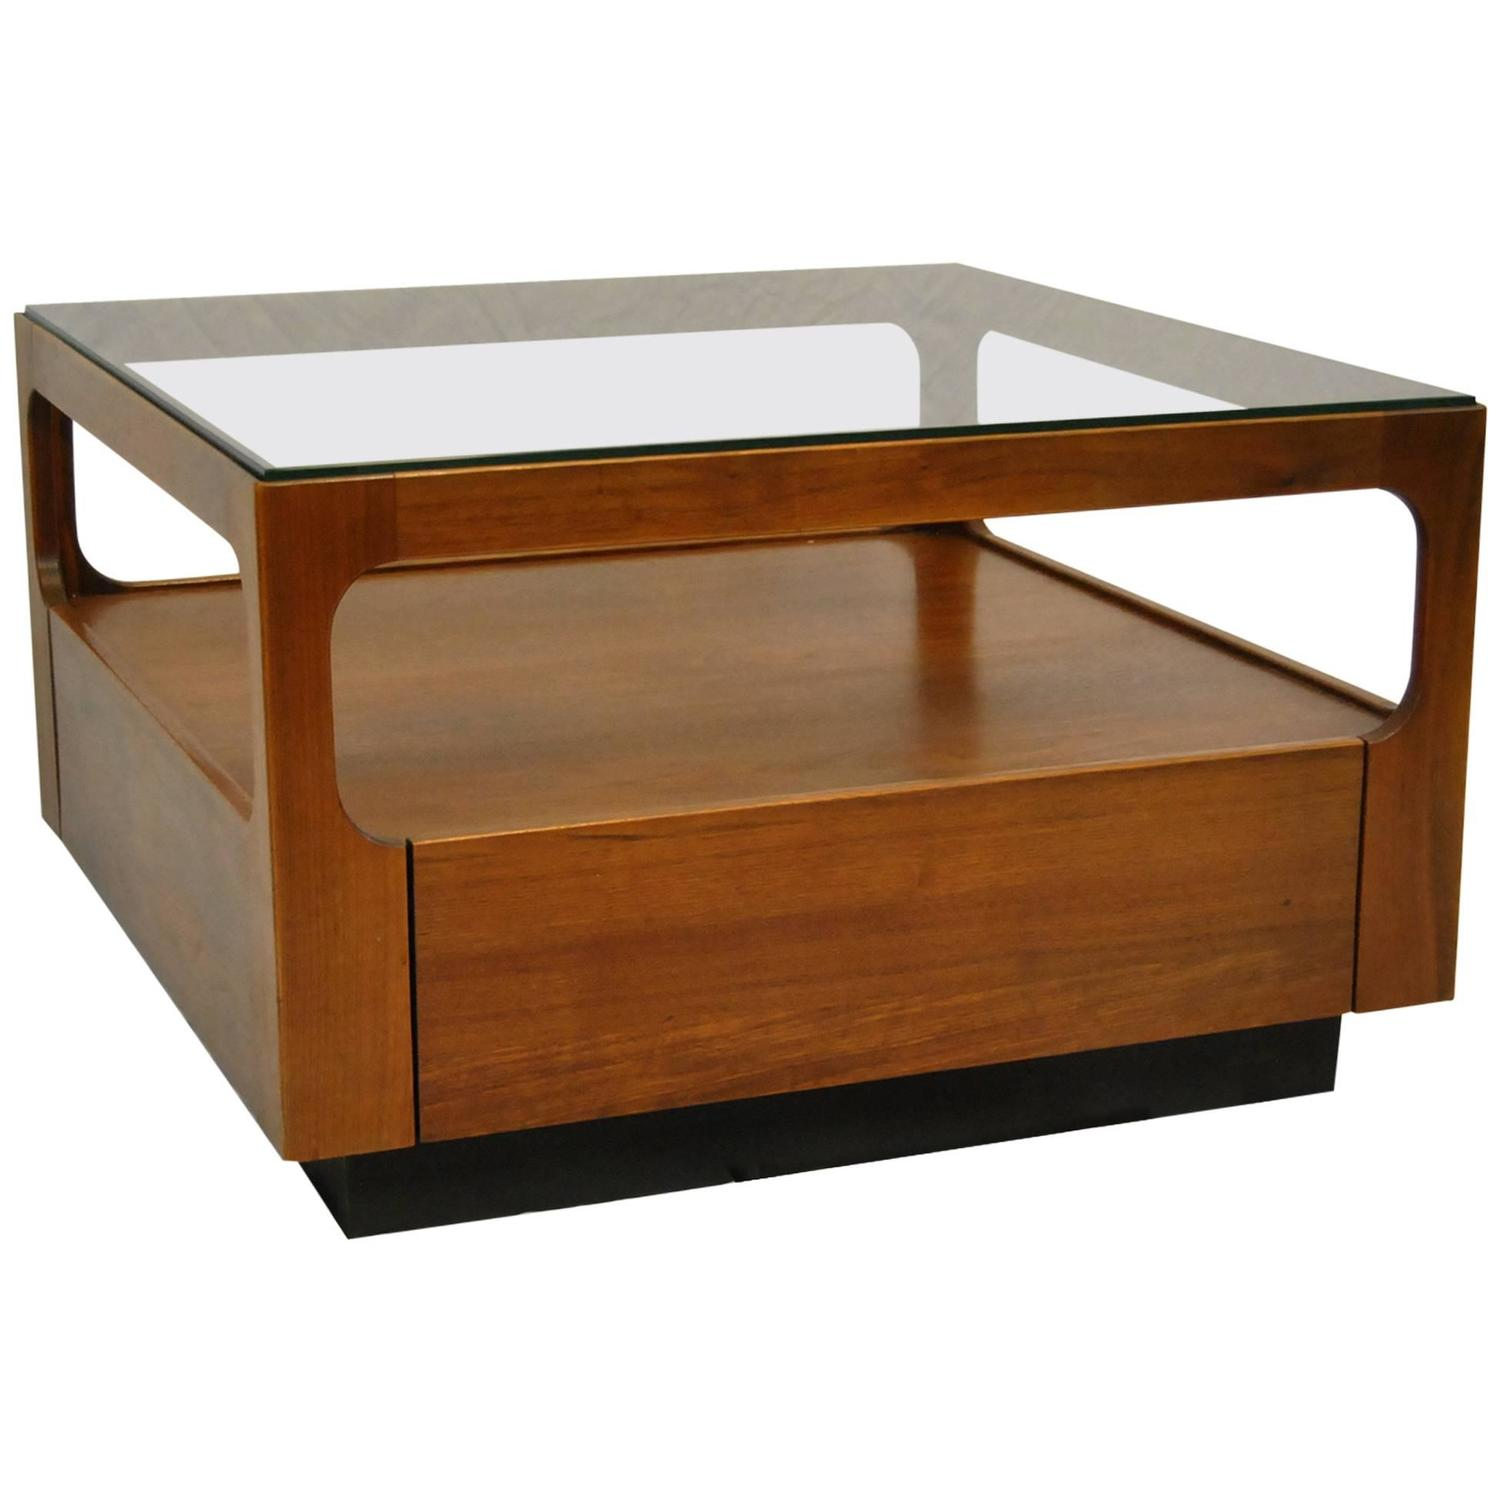 Midcentury Teak Glass Top Coffee Table Designed by John Keal for